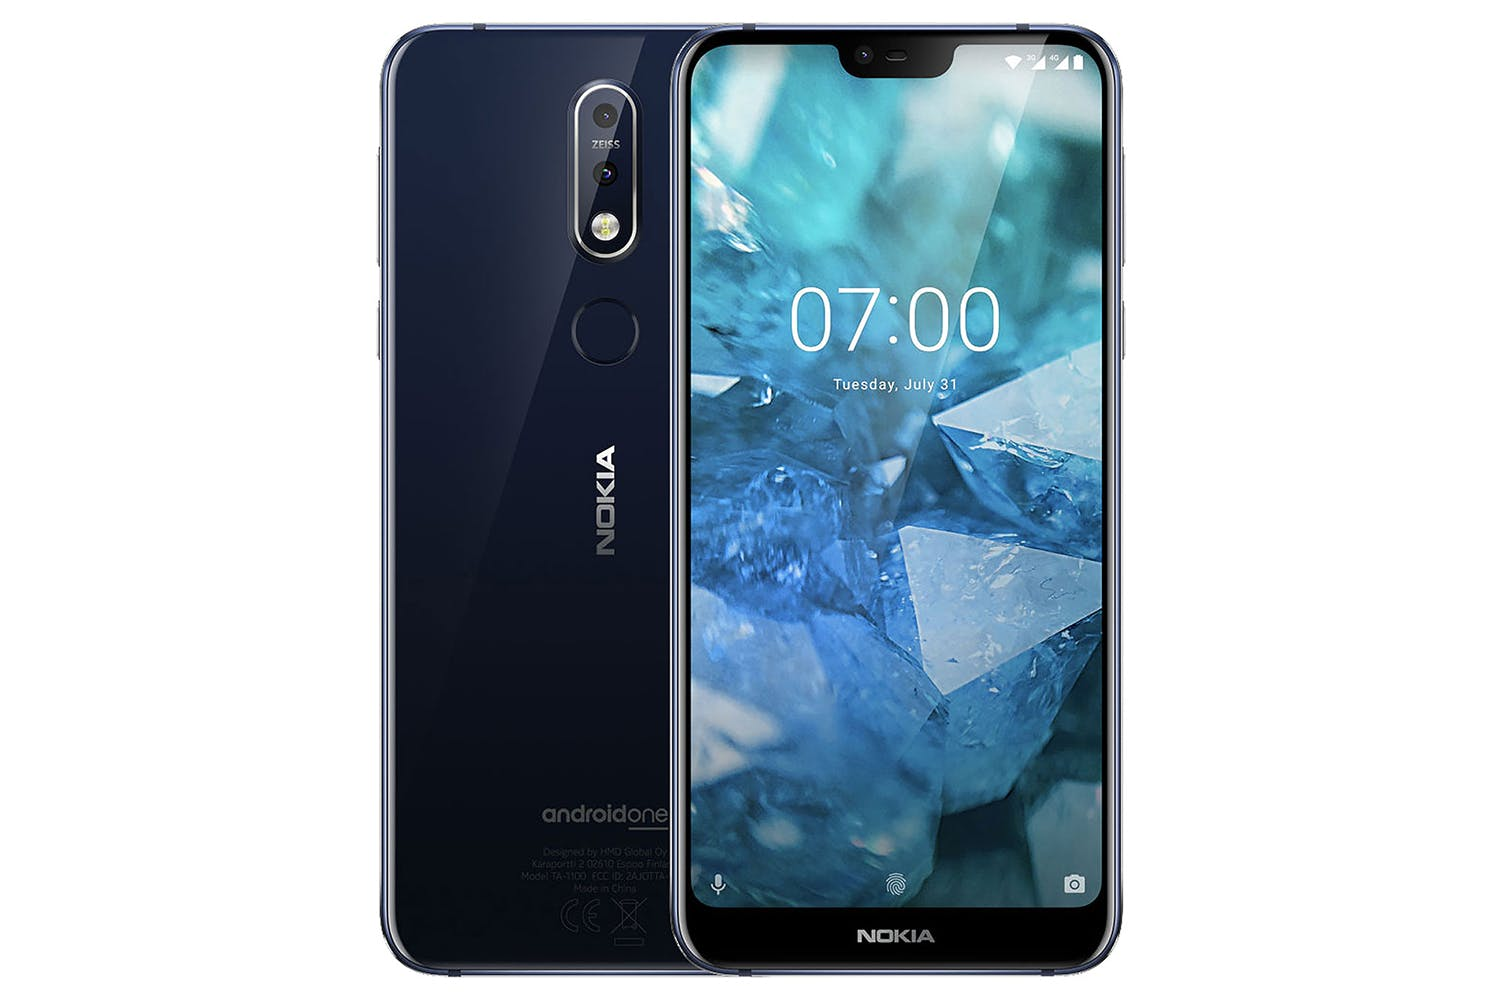 Best Budget Nokia Android Phone - Nokia 7.1